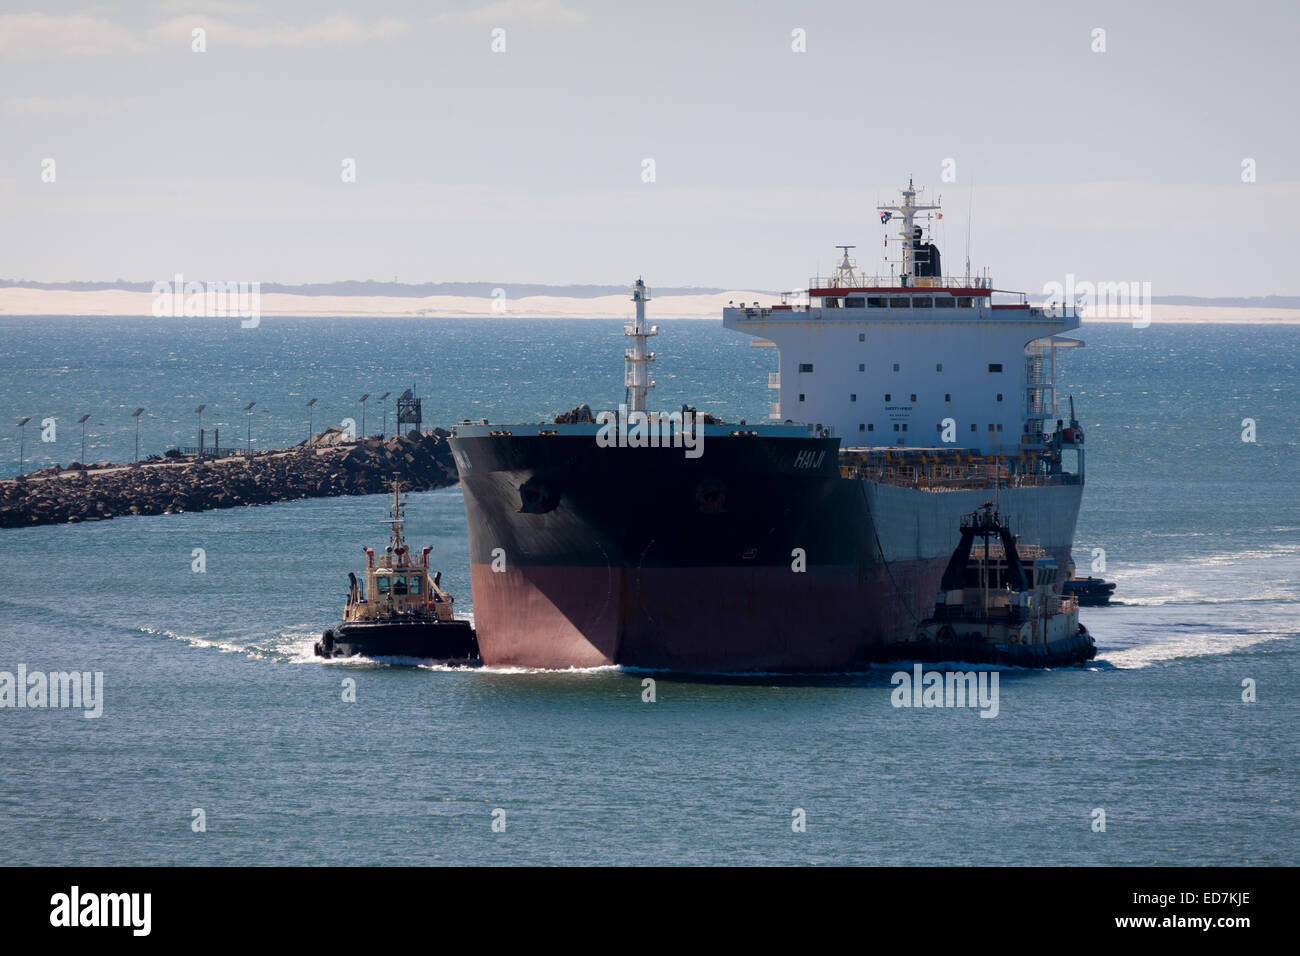 Bulk Carrier Hai Ji entering the Hunter River to load coal at Newcastle NSW Australia - Stock Image